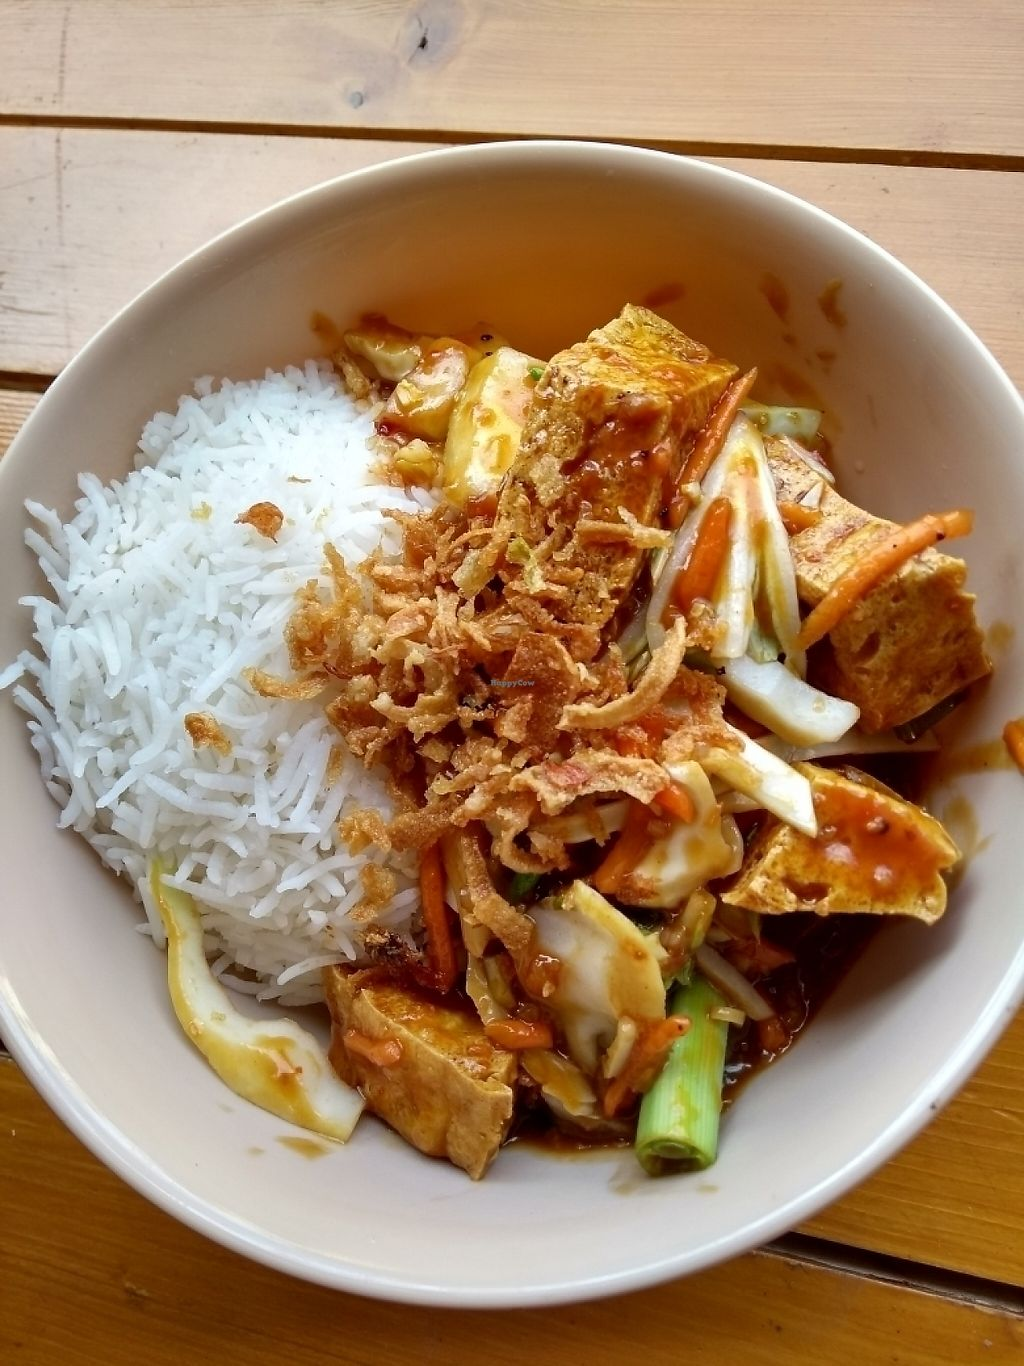 """Photo of Malay Kitchen Cork City  by <a href=""""/members/profile/kaibun"""">kaibun</a> <br/>sweet chilli coco tofu <br/> May 19, 2017  - <a href='/contact/abuse/image/90868/260325'>Report</a>"""